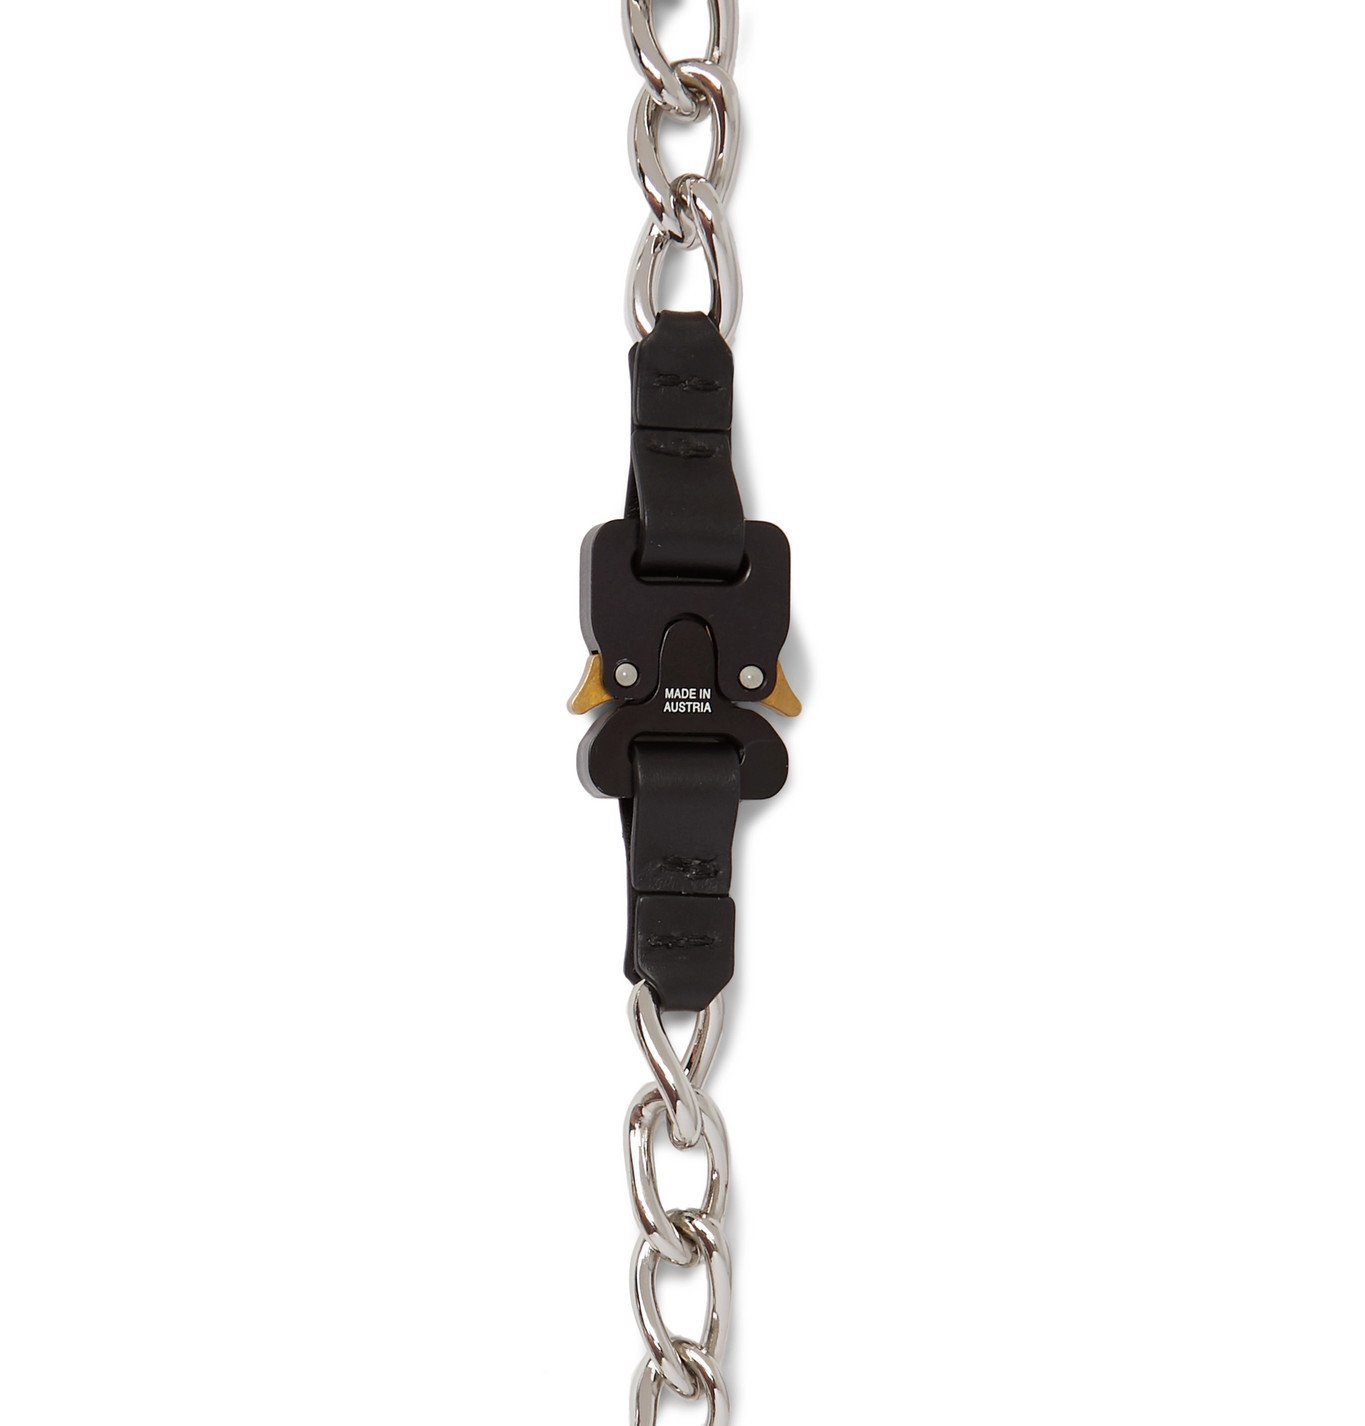 1017 ALYX 9SM - Leather-Trimmed Silver-Tone Chain Necklace - Black